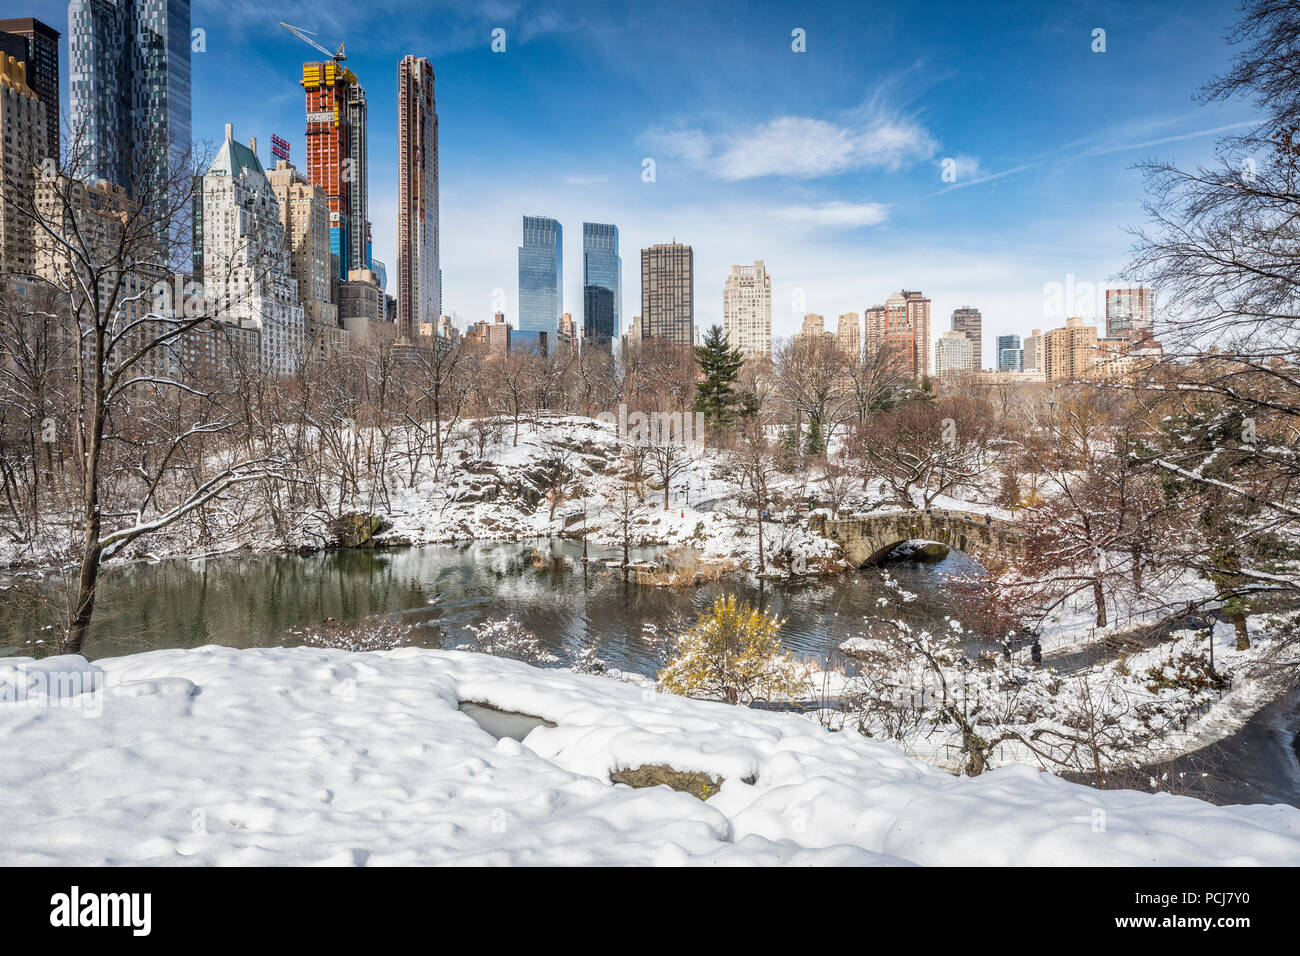 Central park in winter, view to Manhattan buildings and Gapstow bridge, New York City - Stock Image